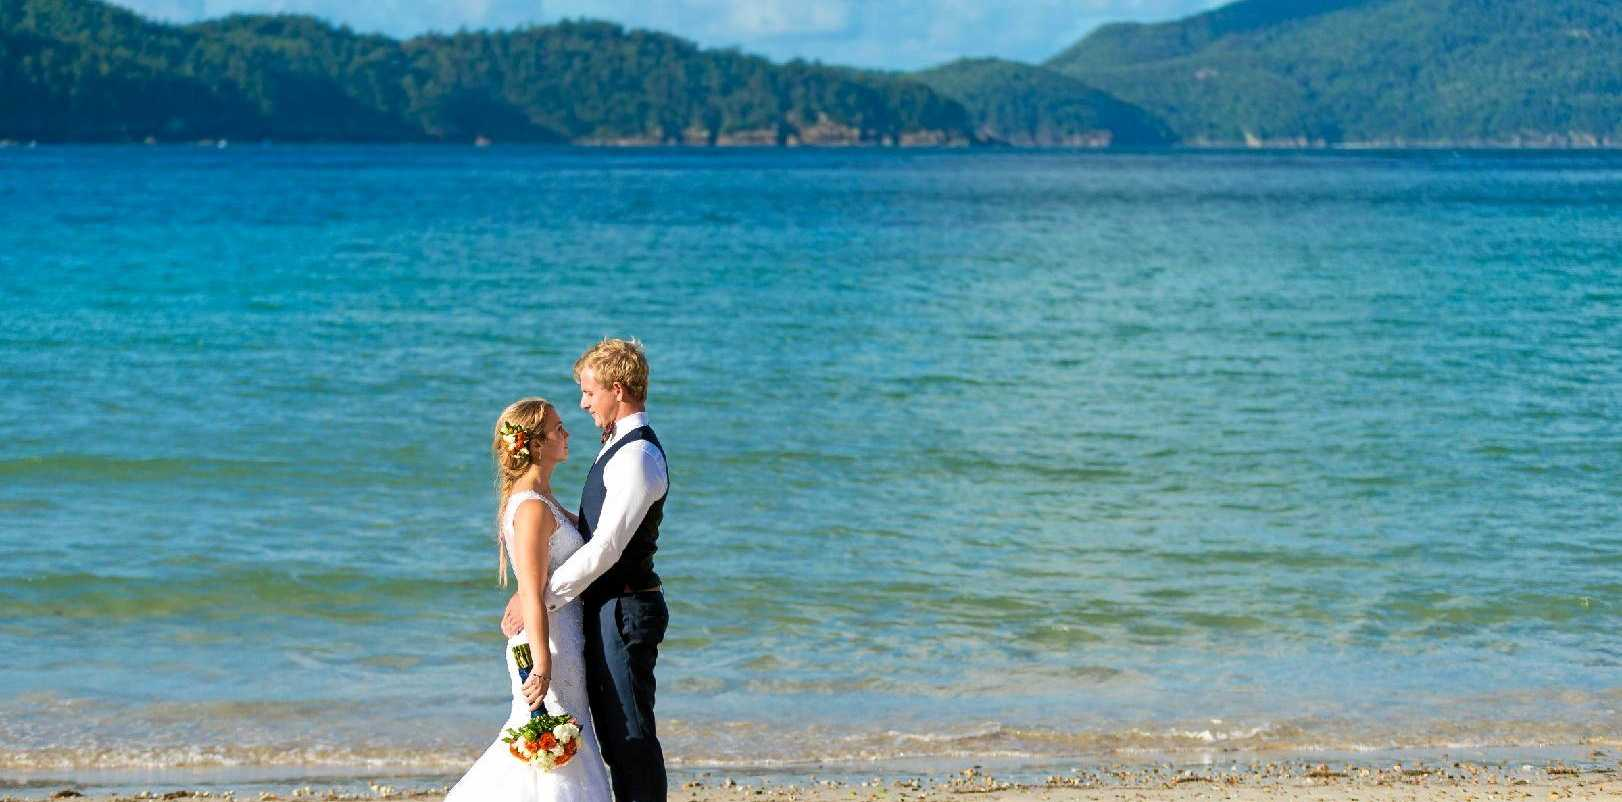 Melissa and Aaron Wade were married on Hamilton Island in April last year.